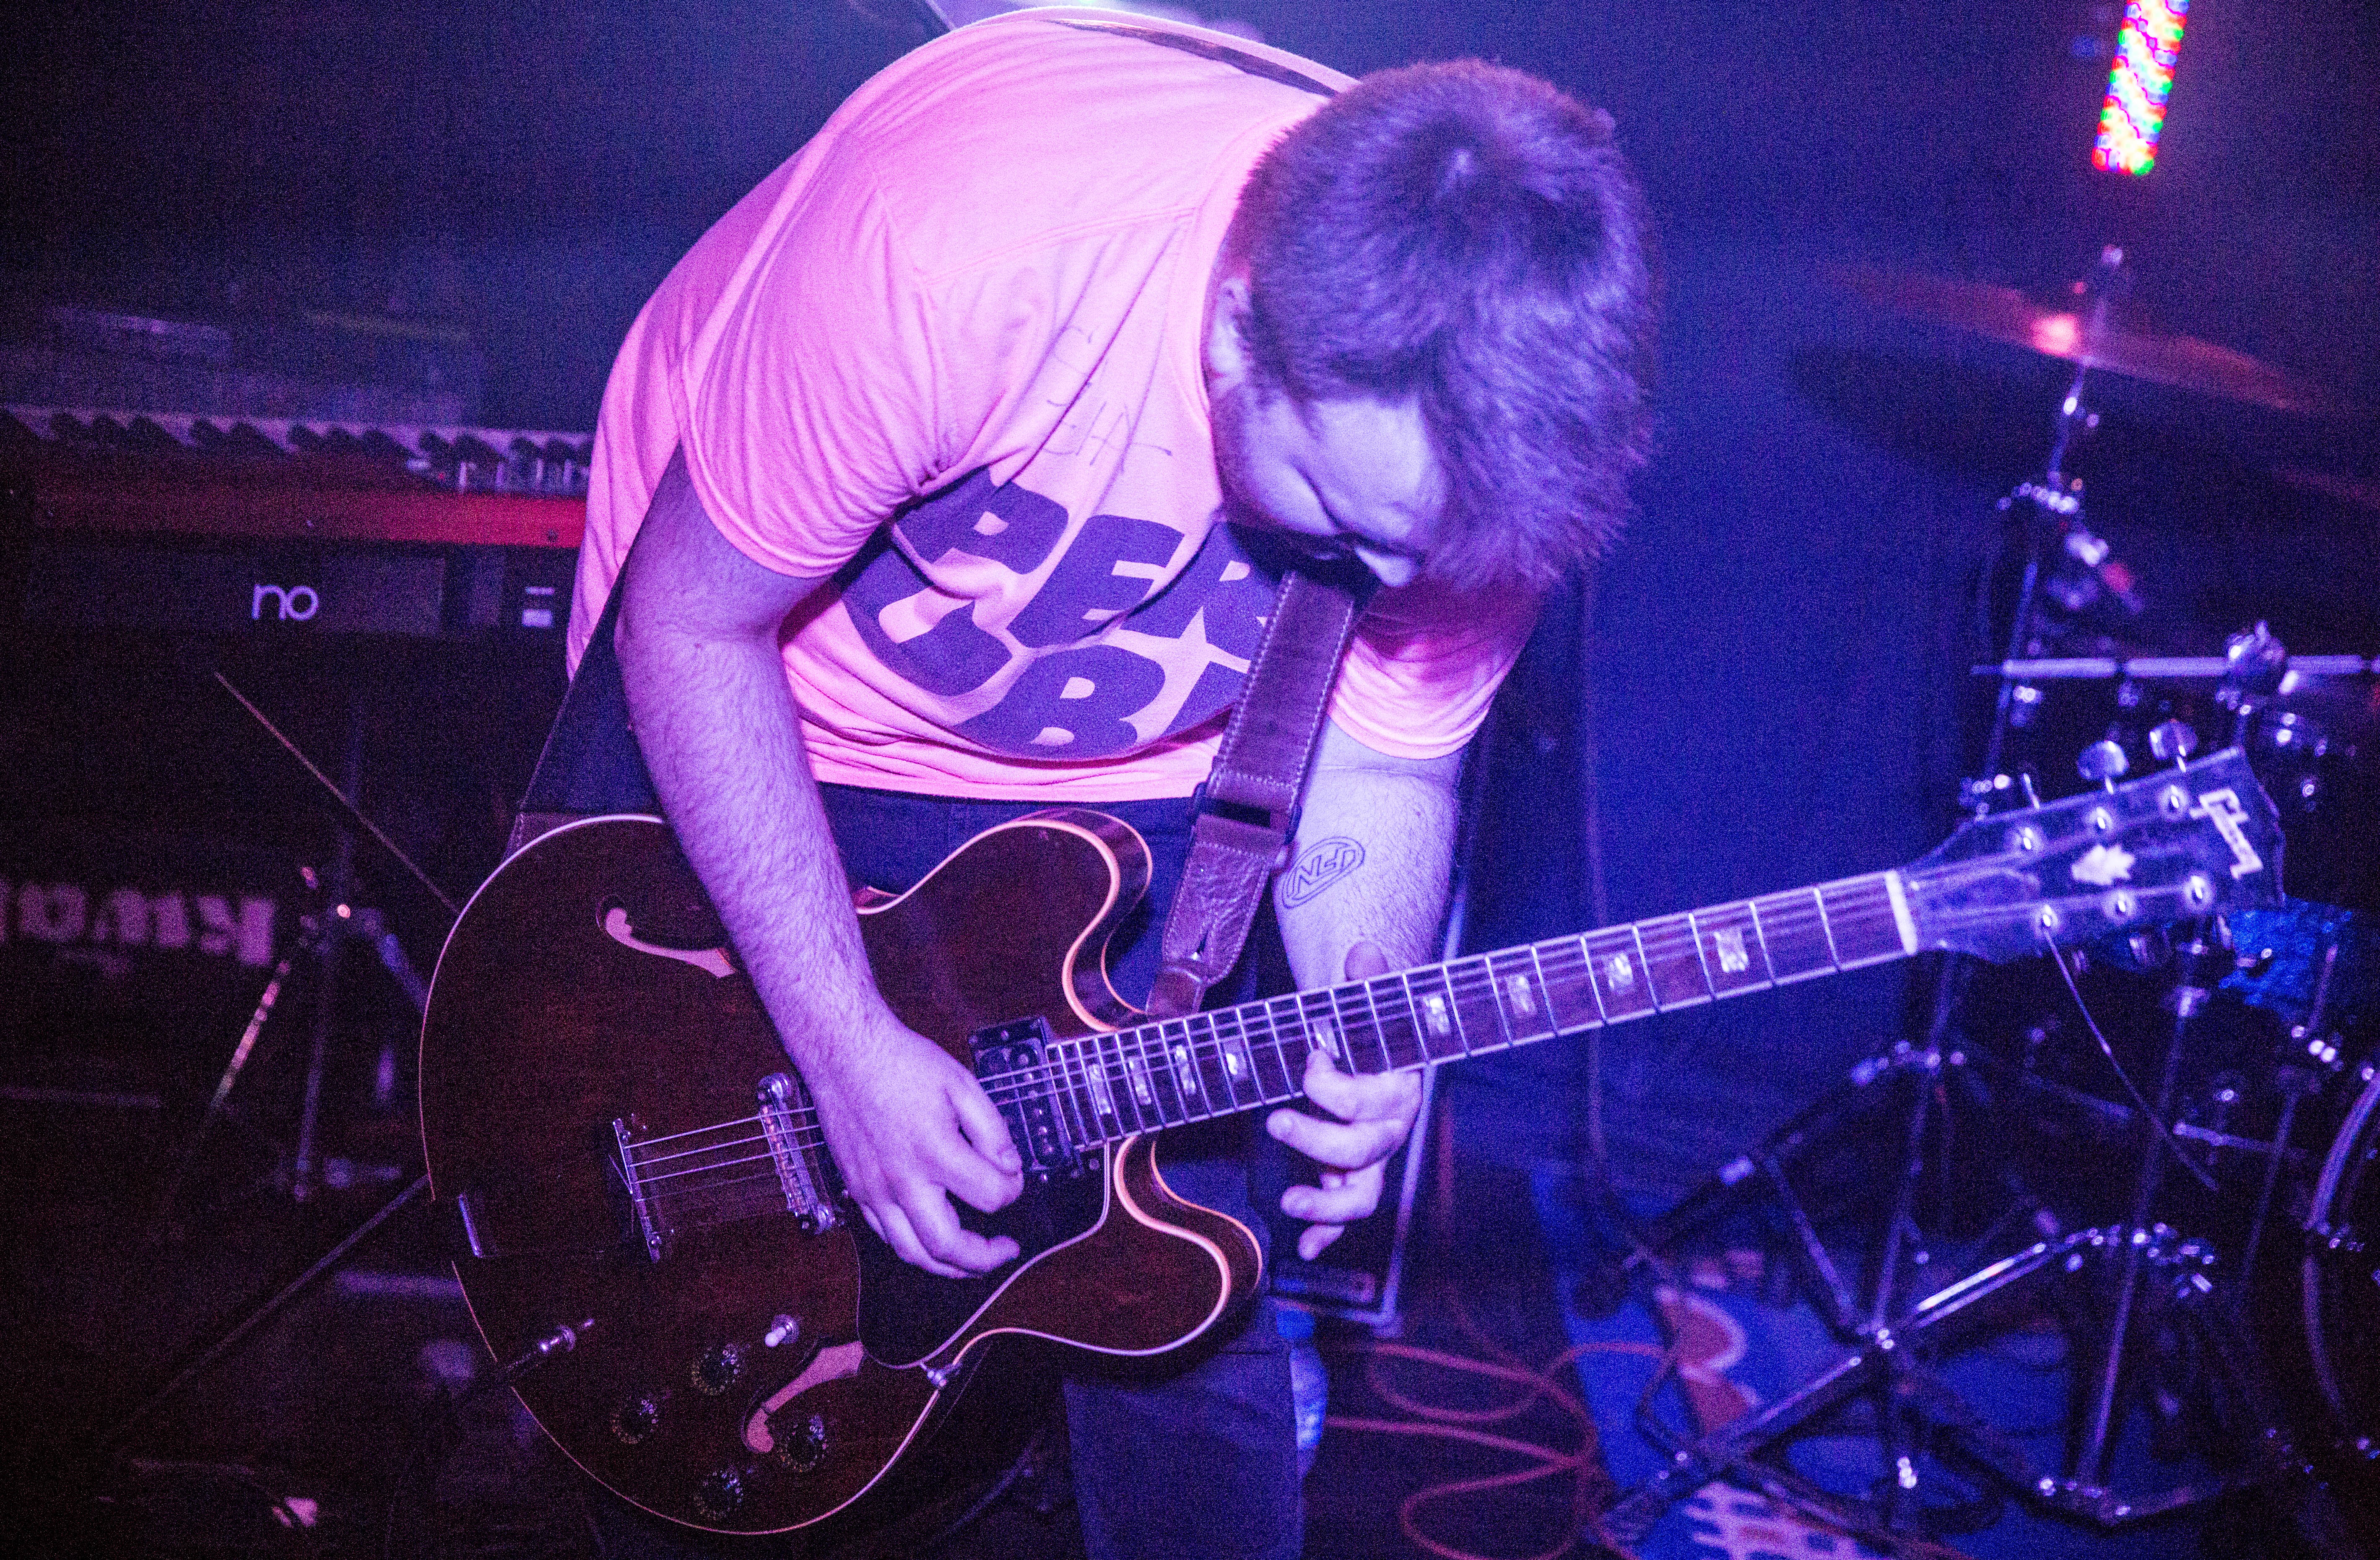 Happyness/Her's – Fulford Arms, York, 11/04/2017